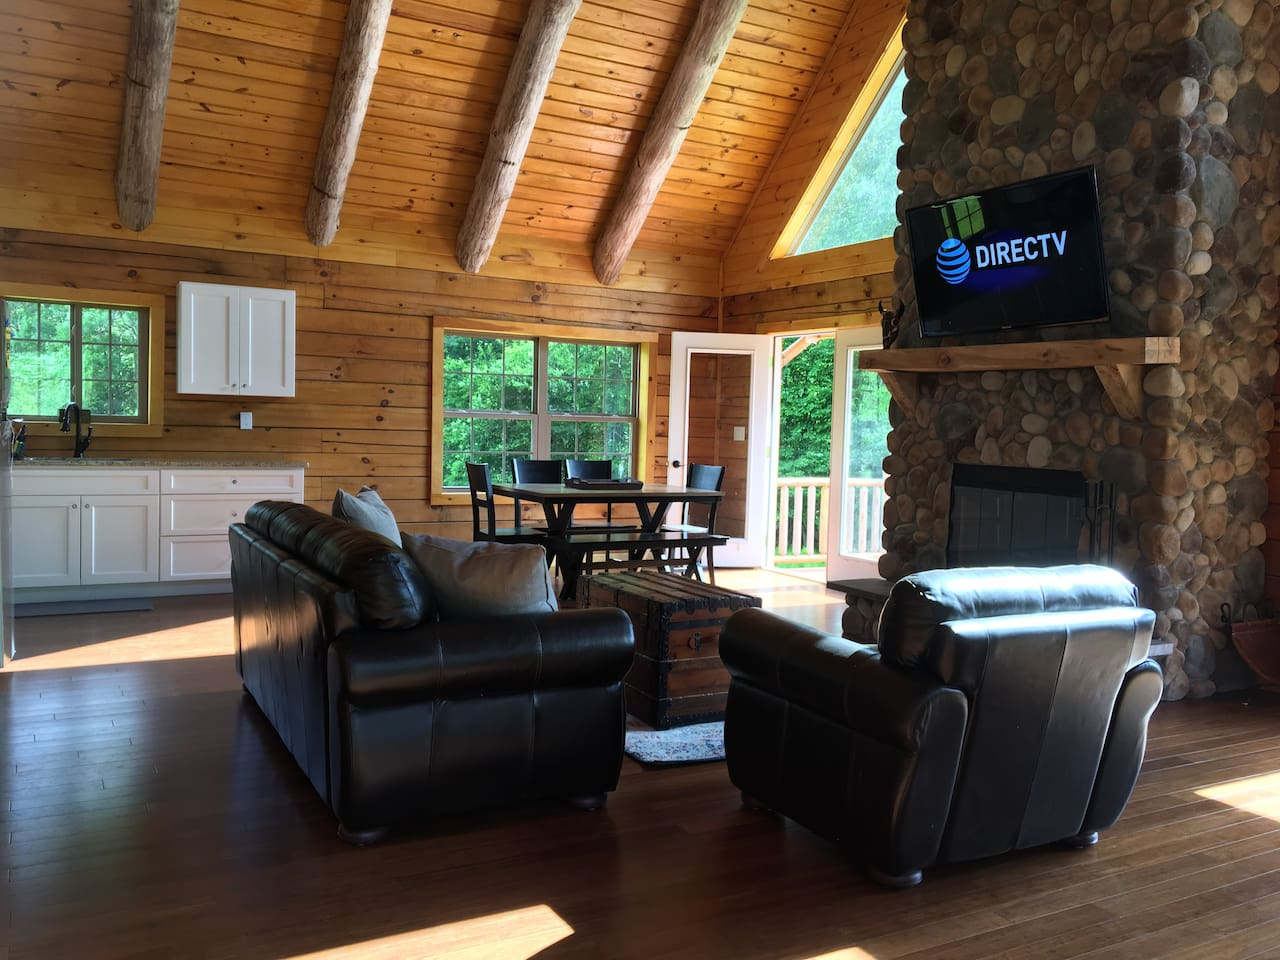 Brand new, specious, luxurious log cabin surrounded with nature and wild meadows.  Just a few minutes drive from center of town (restaurants, shopping centers, movie theater) . An amazing place for fun and relaxation all seasons of the year!